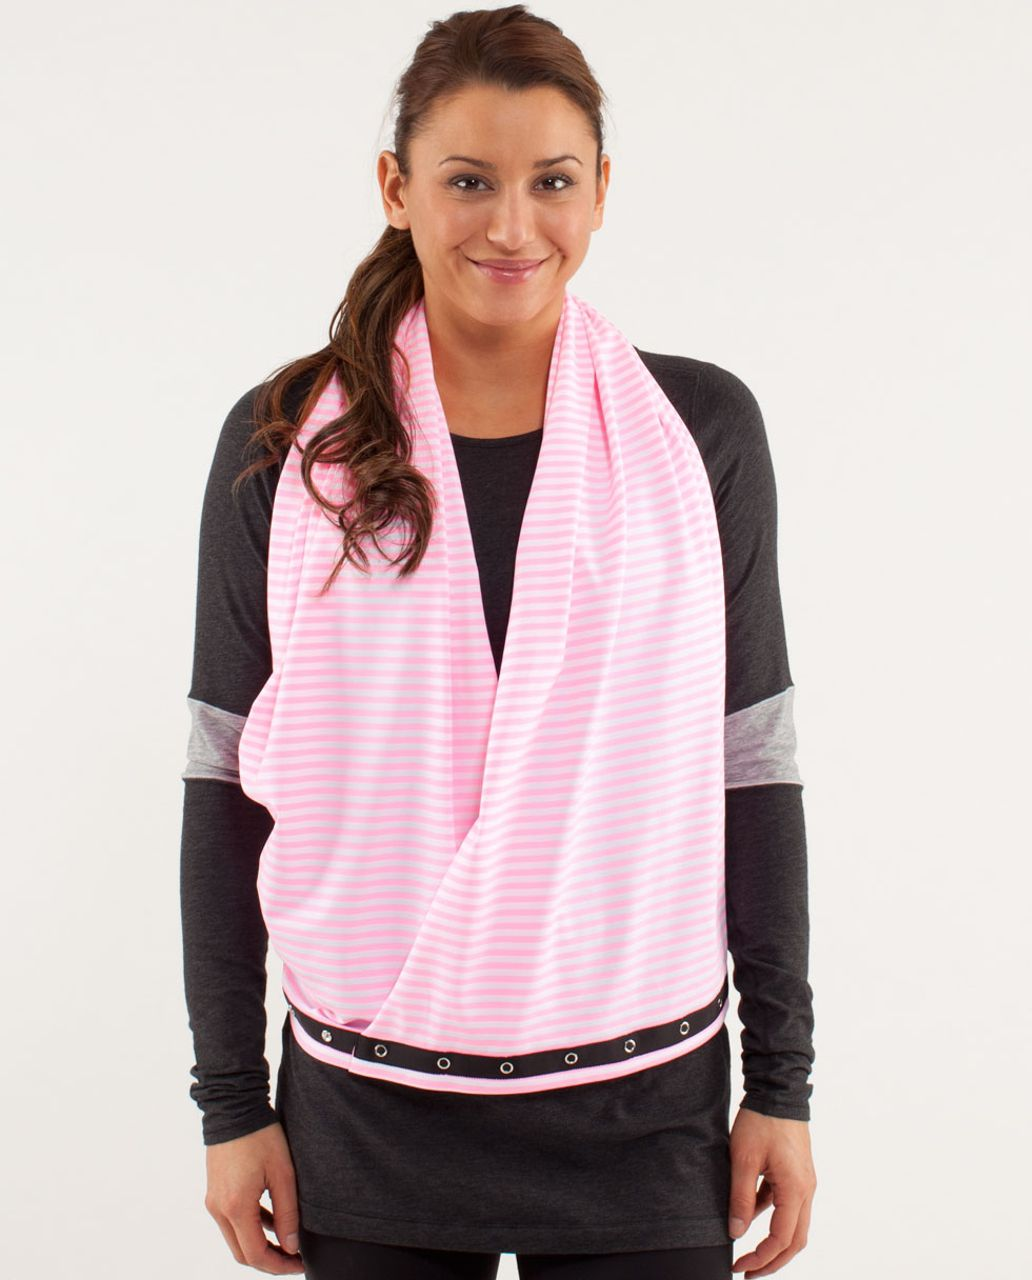 Lululemon Vinyasa Scarf *Luon Light - Classic Stripe White Pink Shell